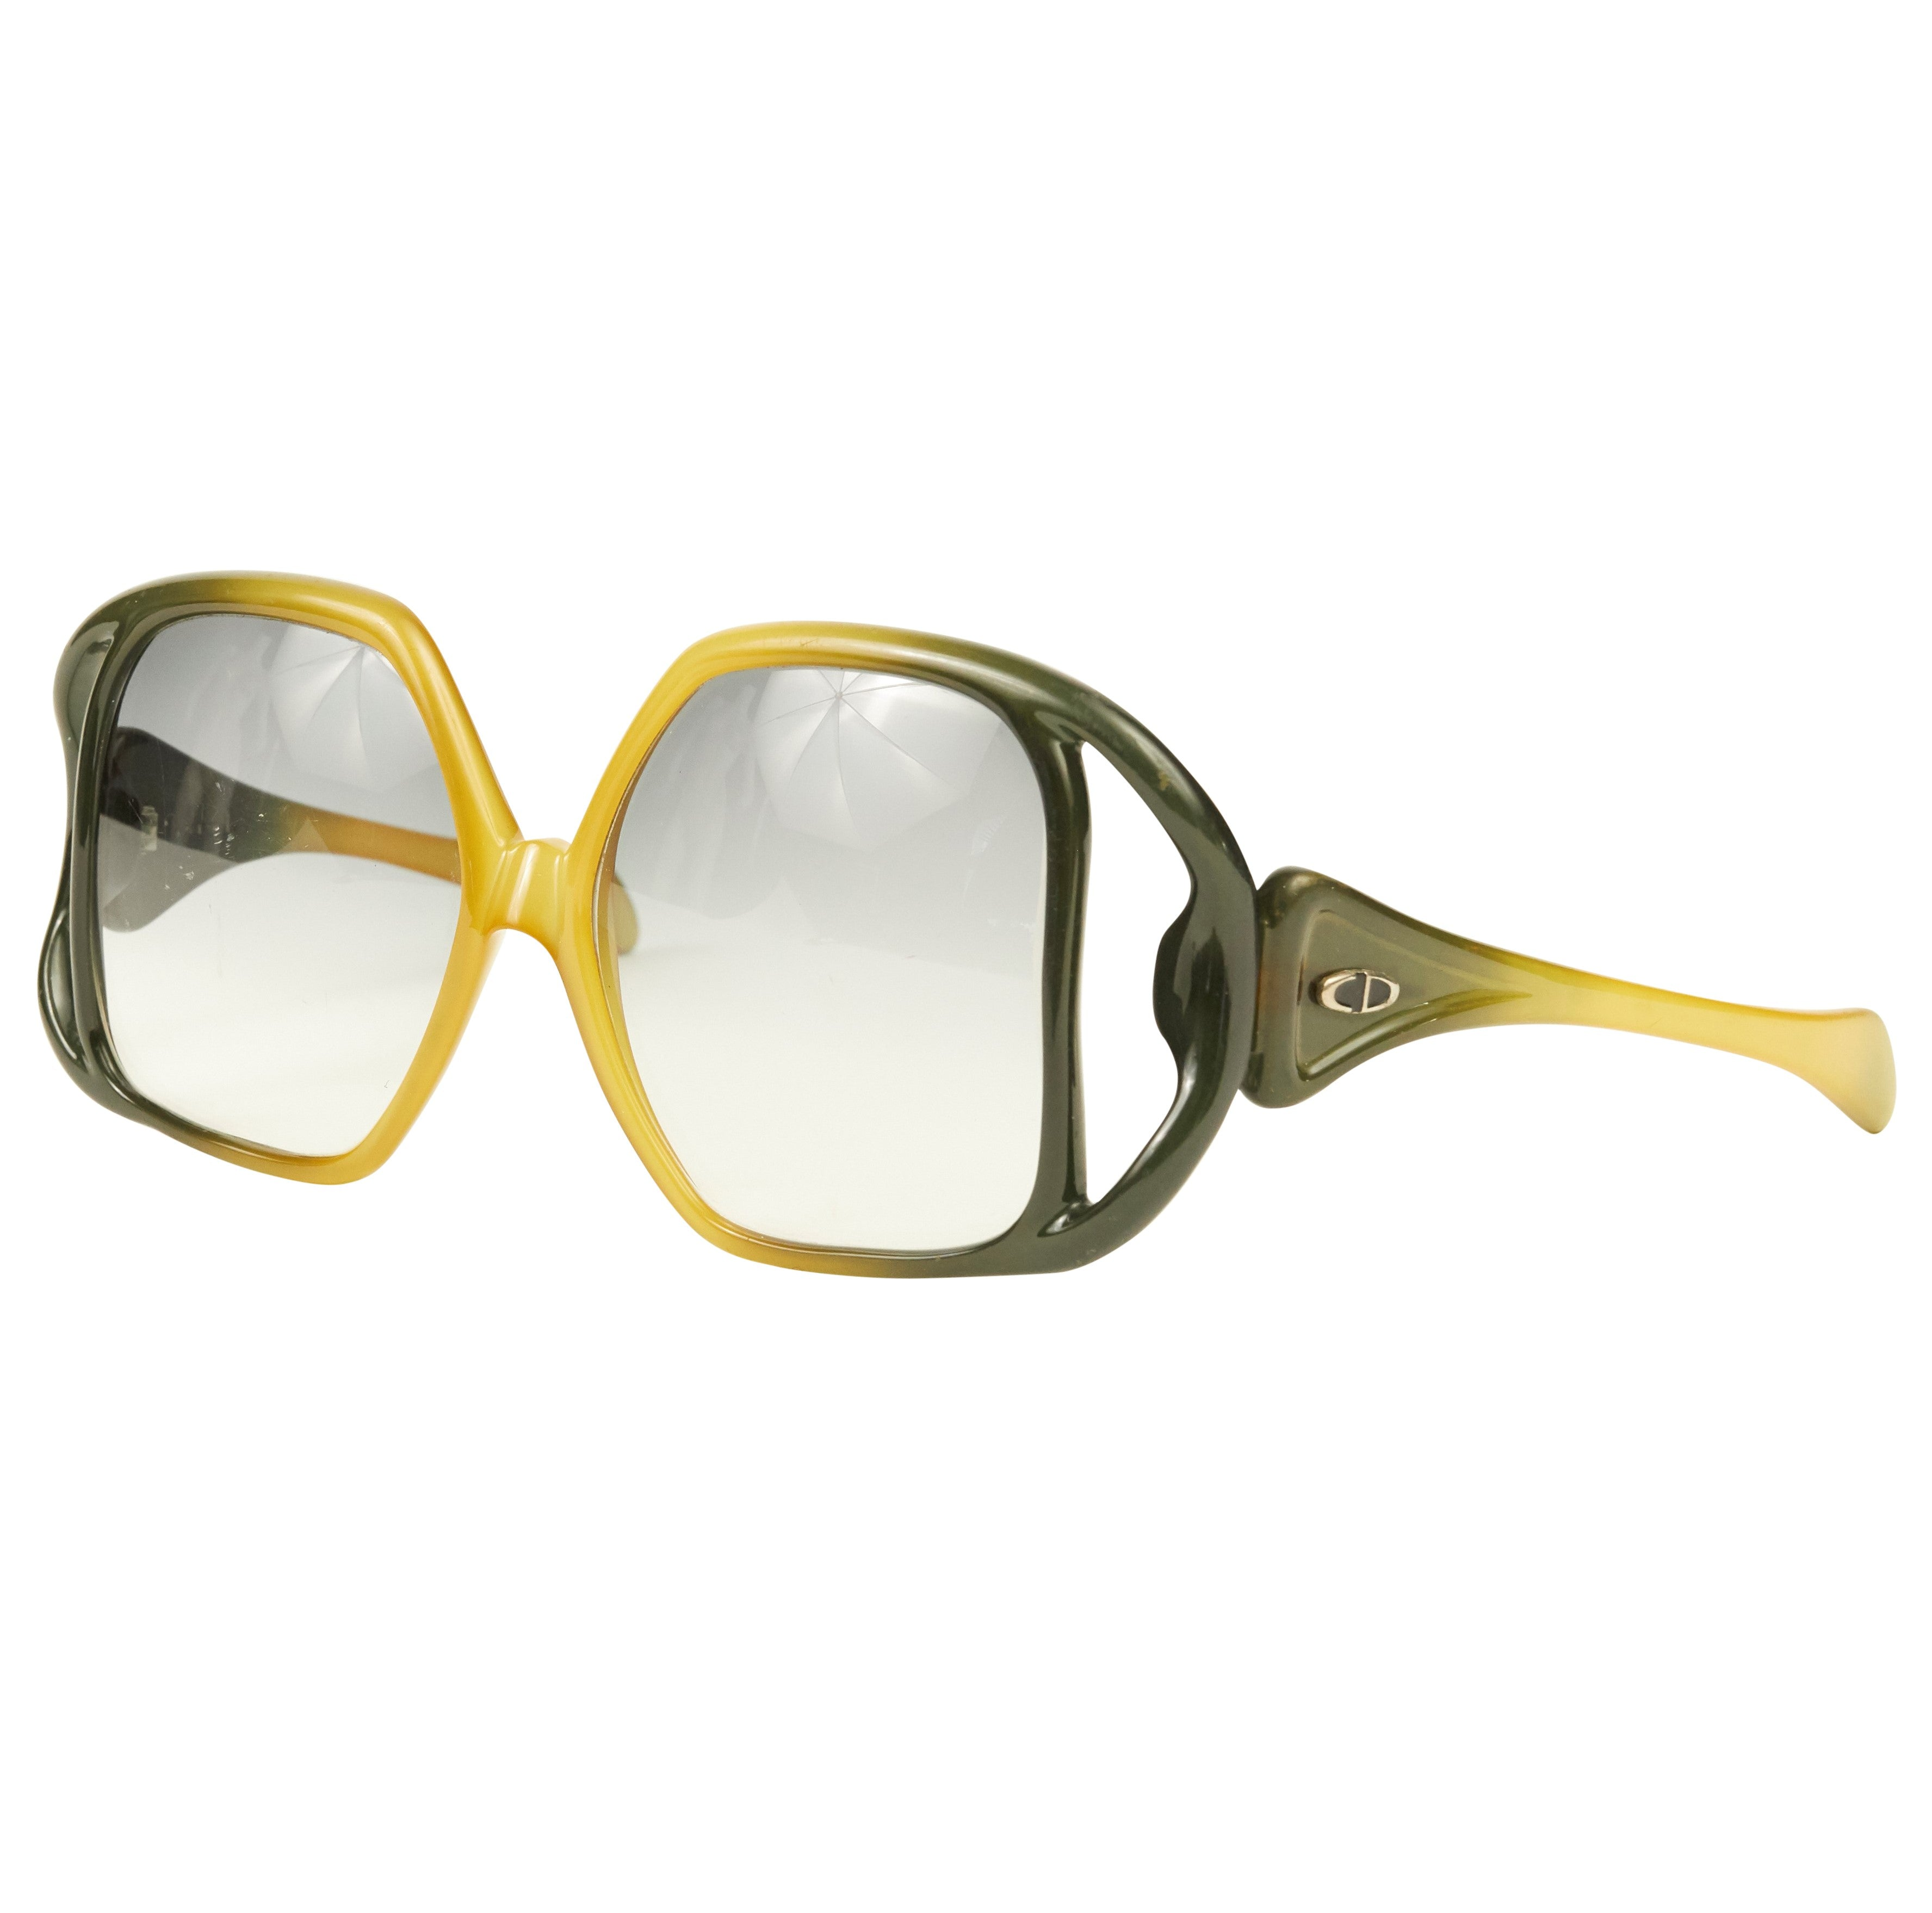 1973 Documented Optyl D02 Oversized Gradient Cut-Out Sunglasses